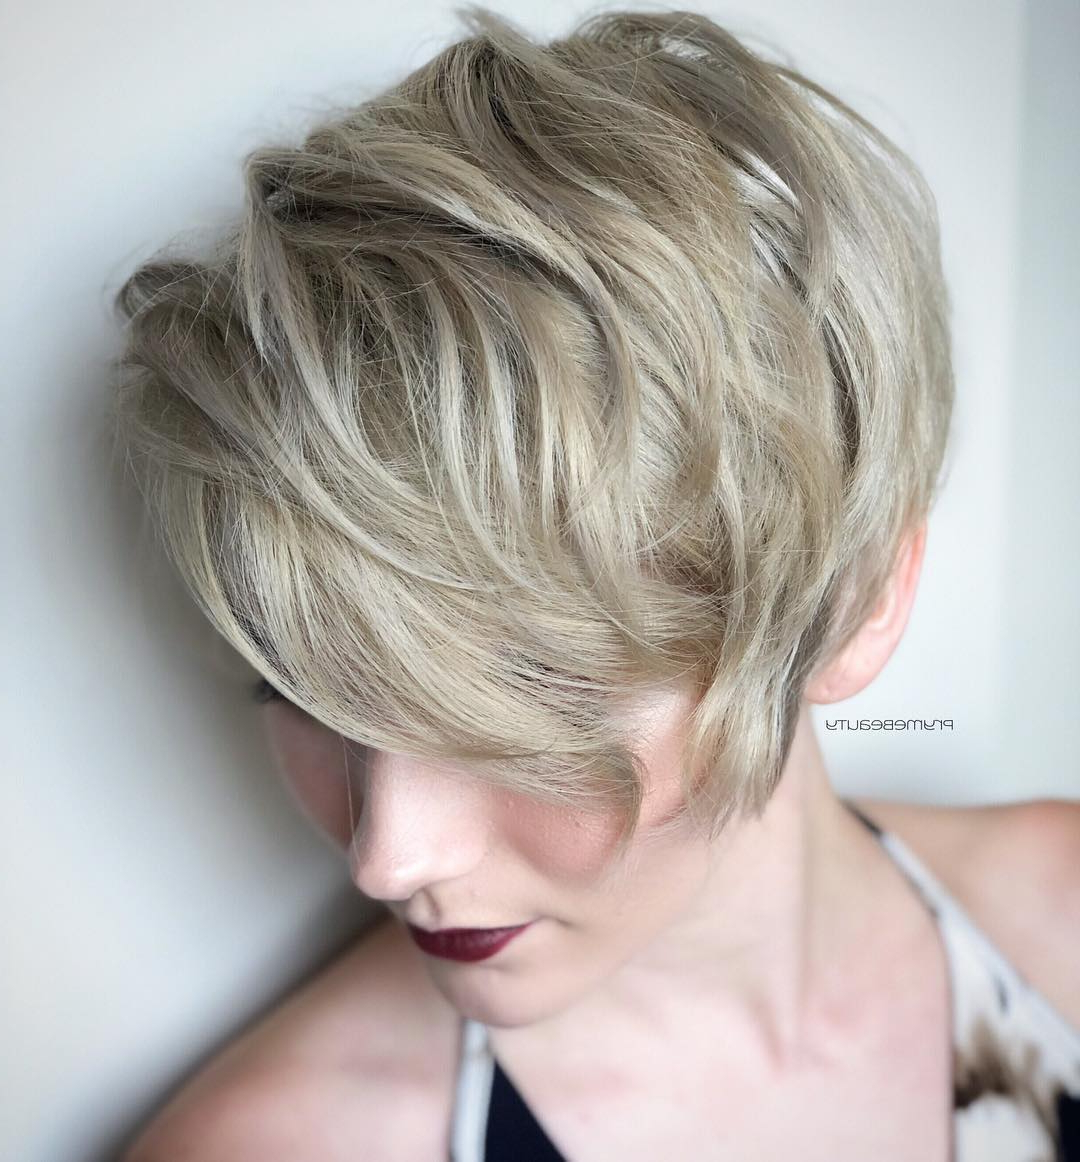 Top 10 Trendy, Low Maintenance Short Layered Hairstyles For 2018  2019 Inside Short Haircuts For Voluminous Hair (View 21 of 25)